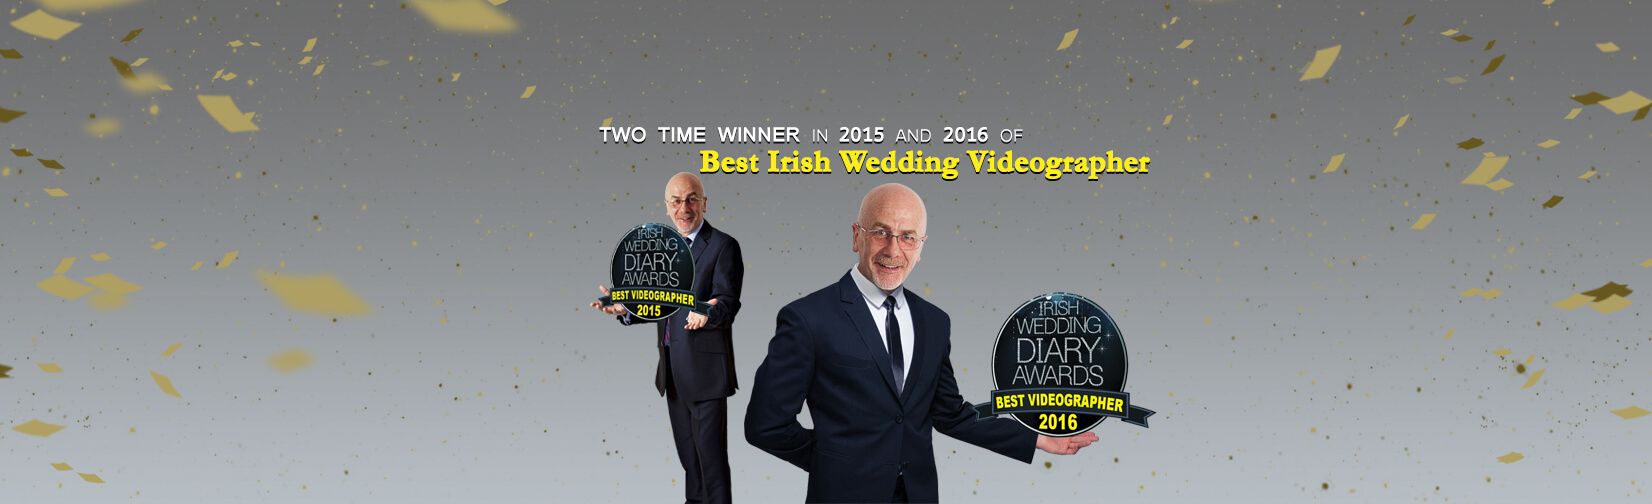 Winner of the BEST Videographer in Ireland